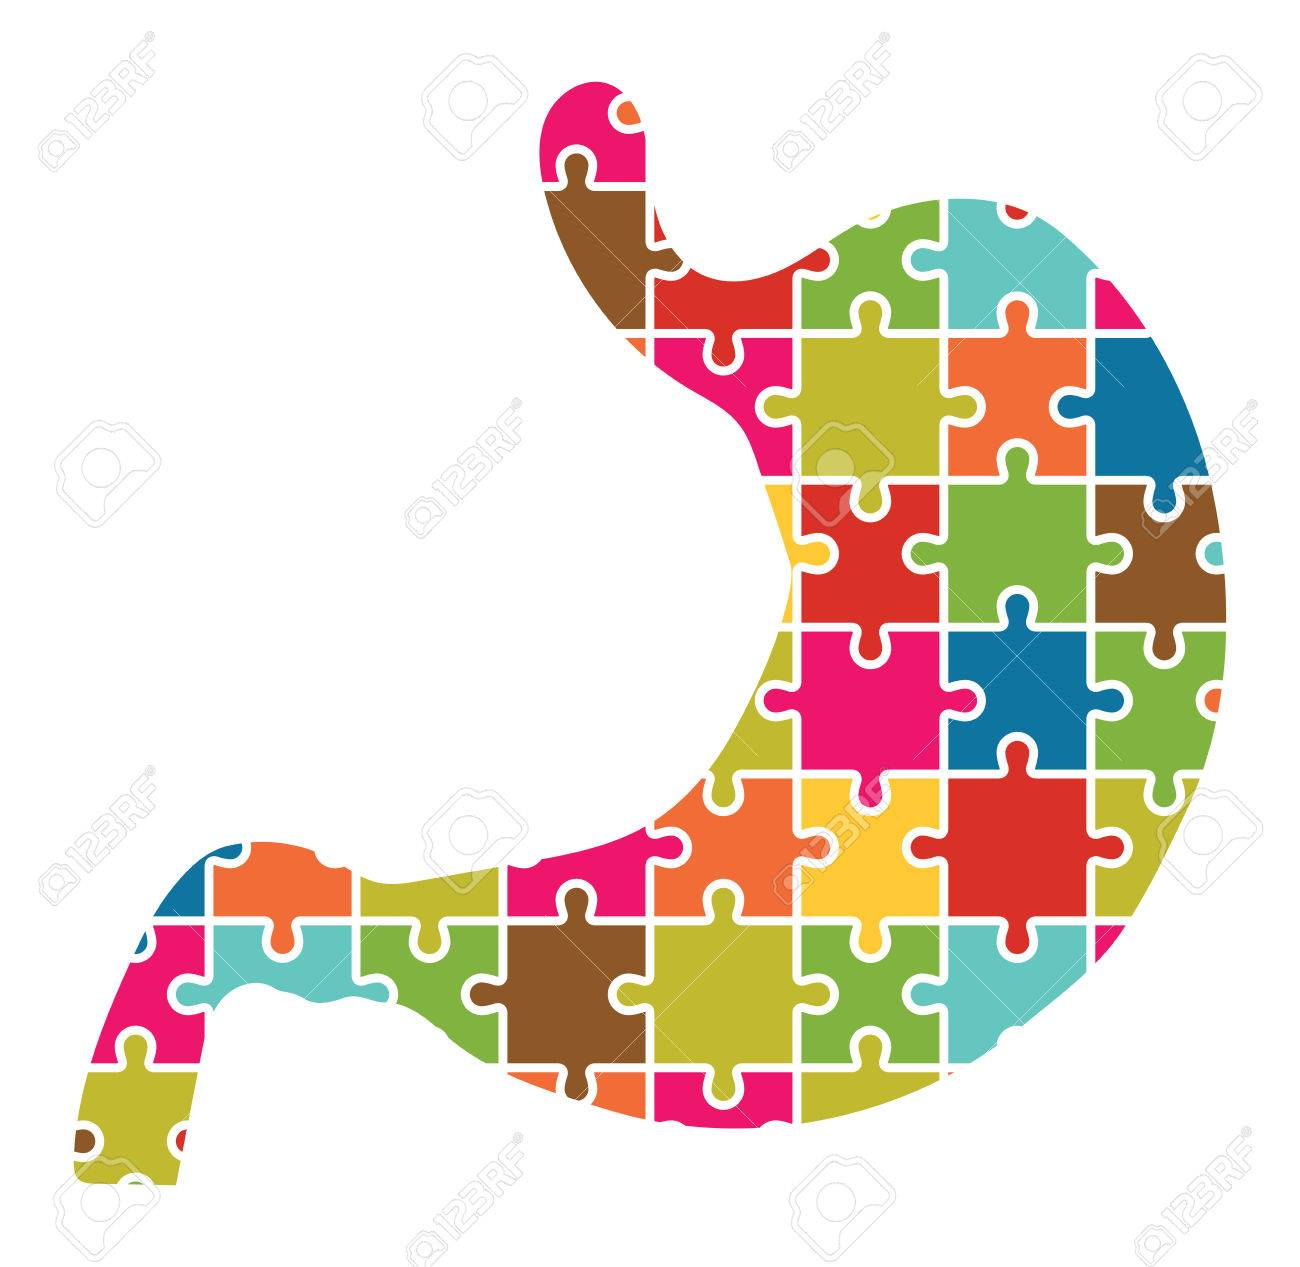 Stomach Jigsaw Puzzle Pieces Abstract - 38160542